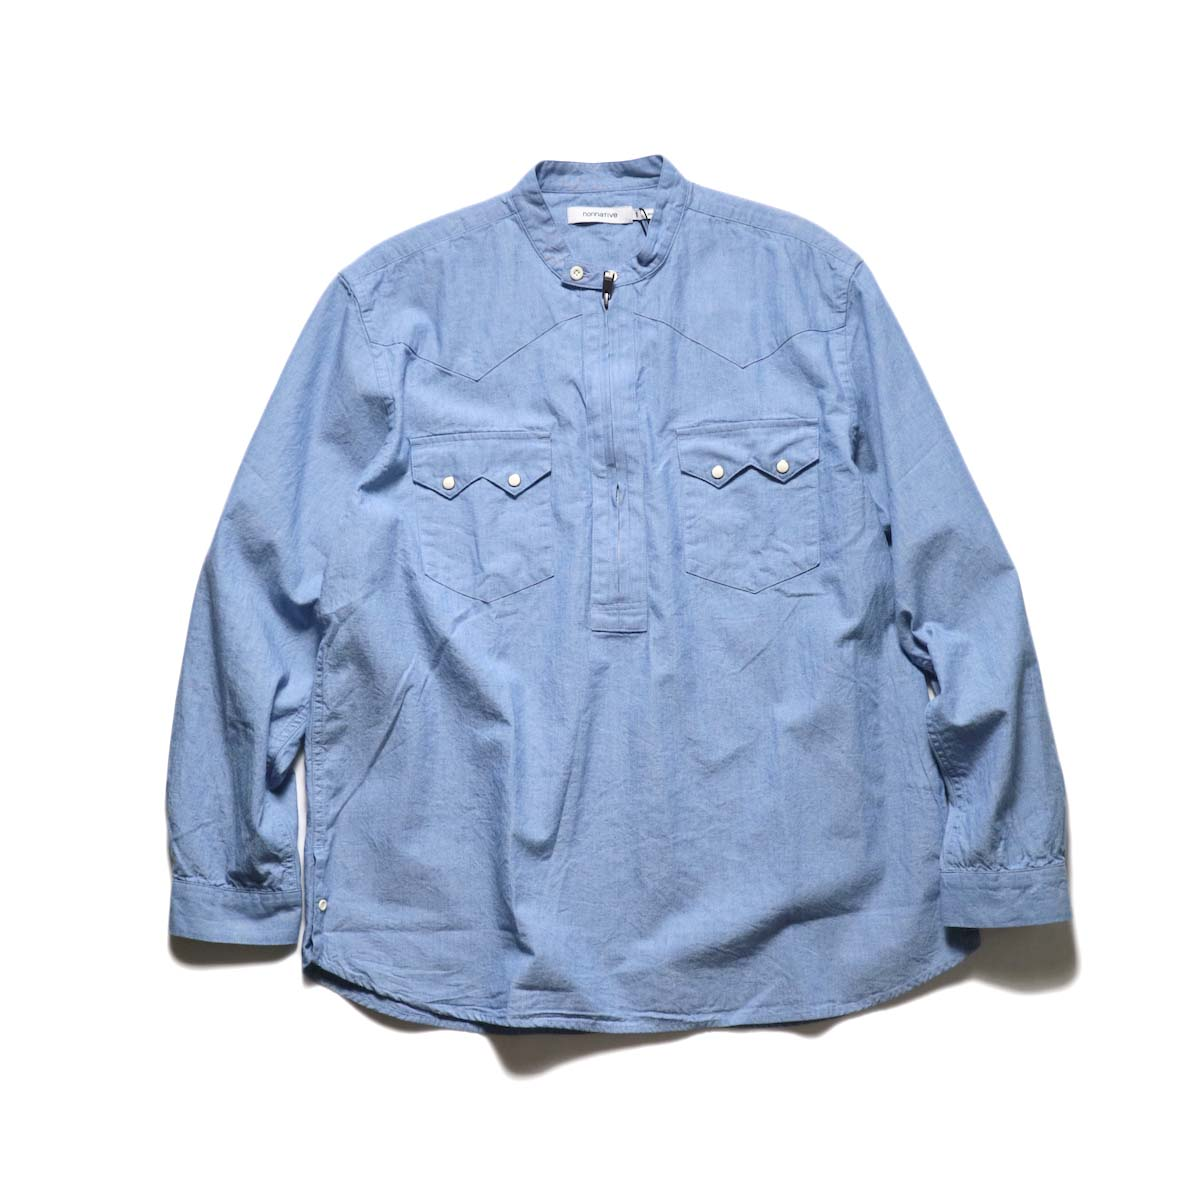 nonnative / RANCHER PULLOVER SHIRT RELAXED FIT COTTON 5oz CHAMBRAY (Sax)